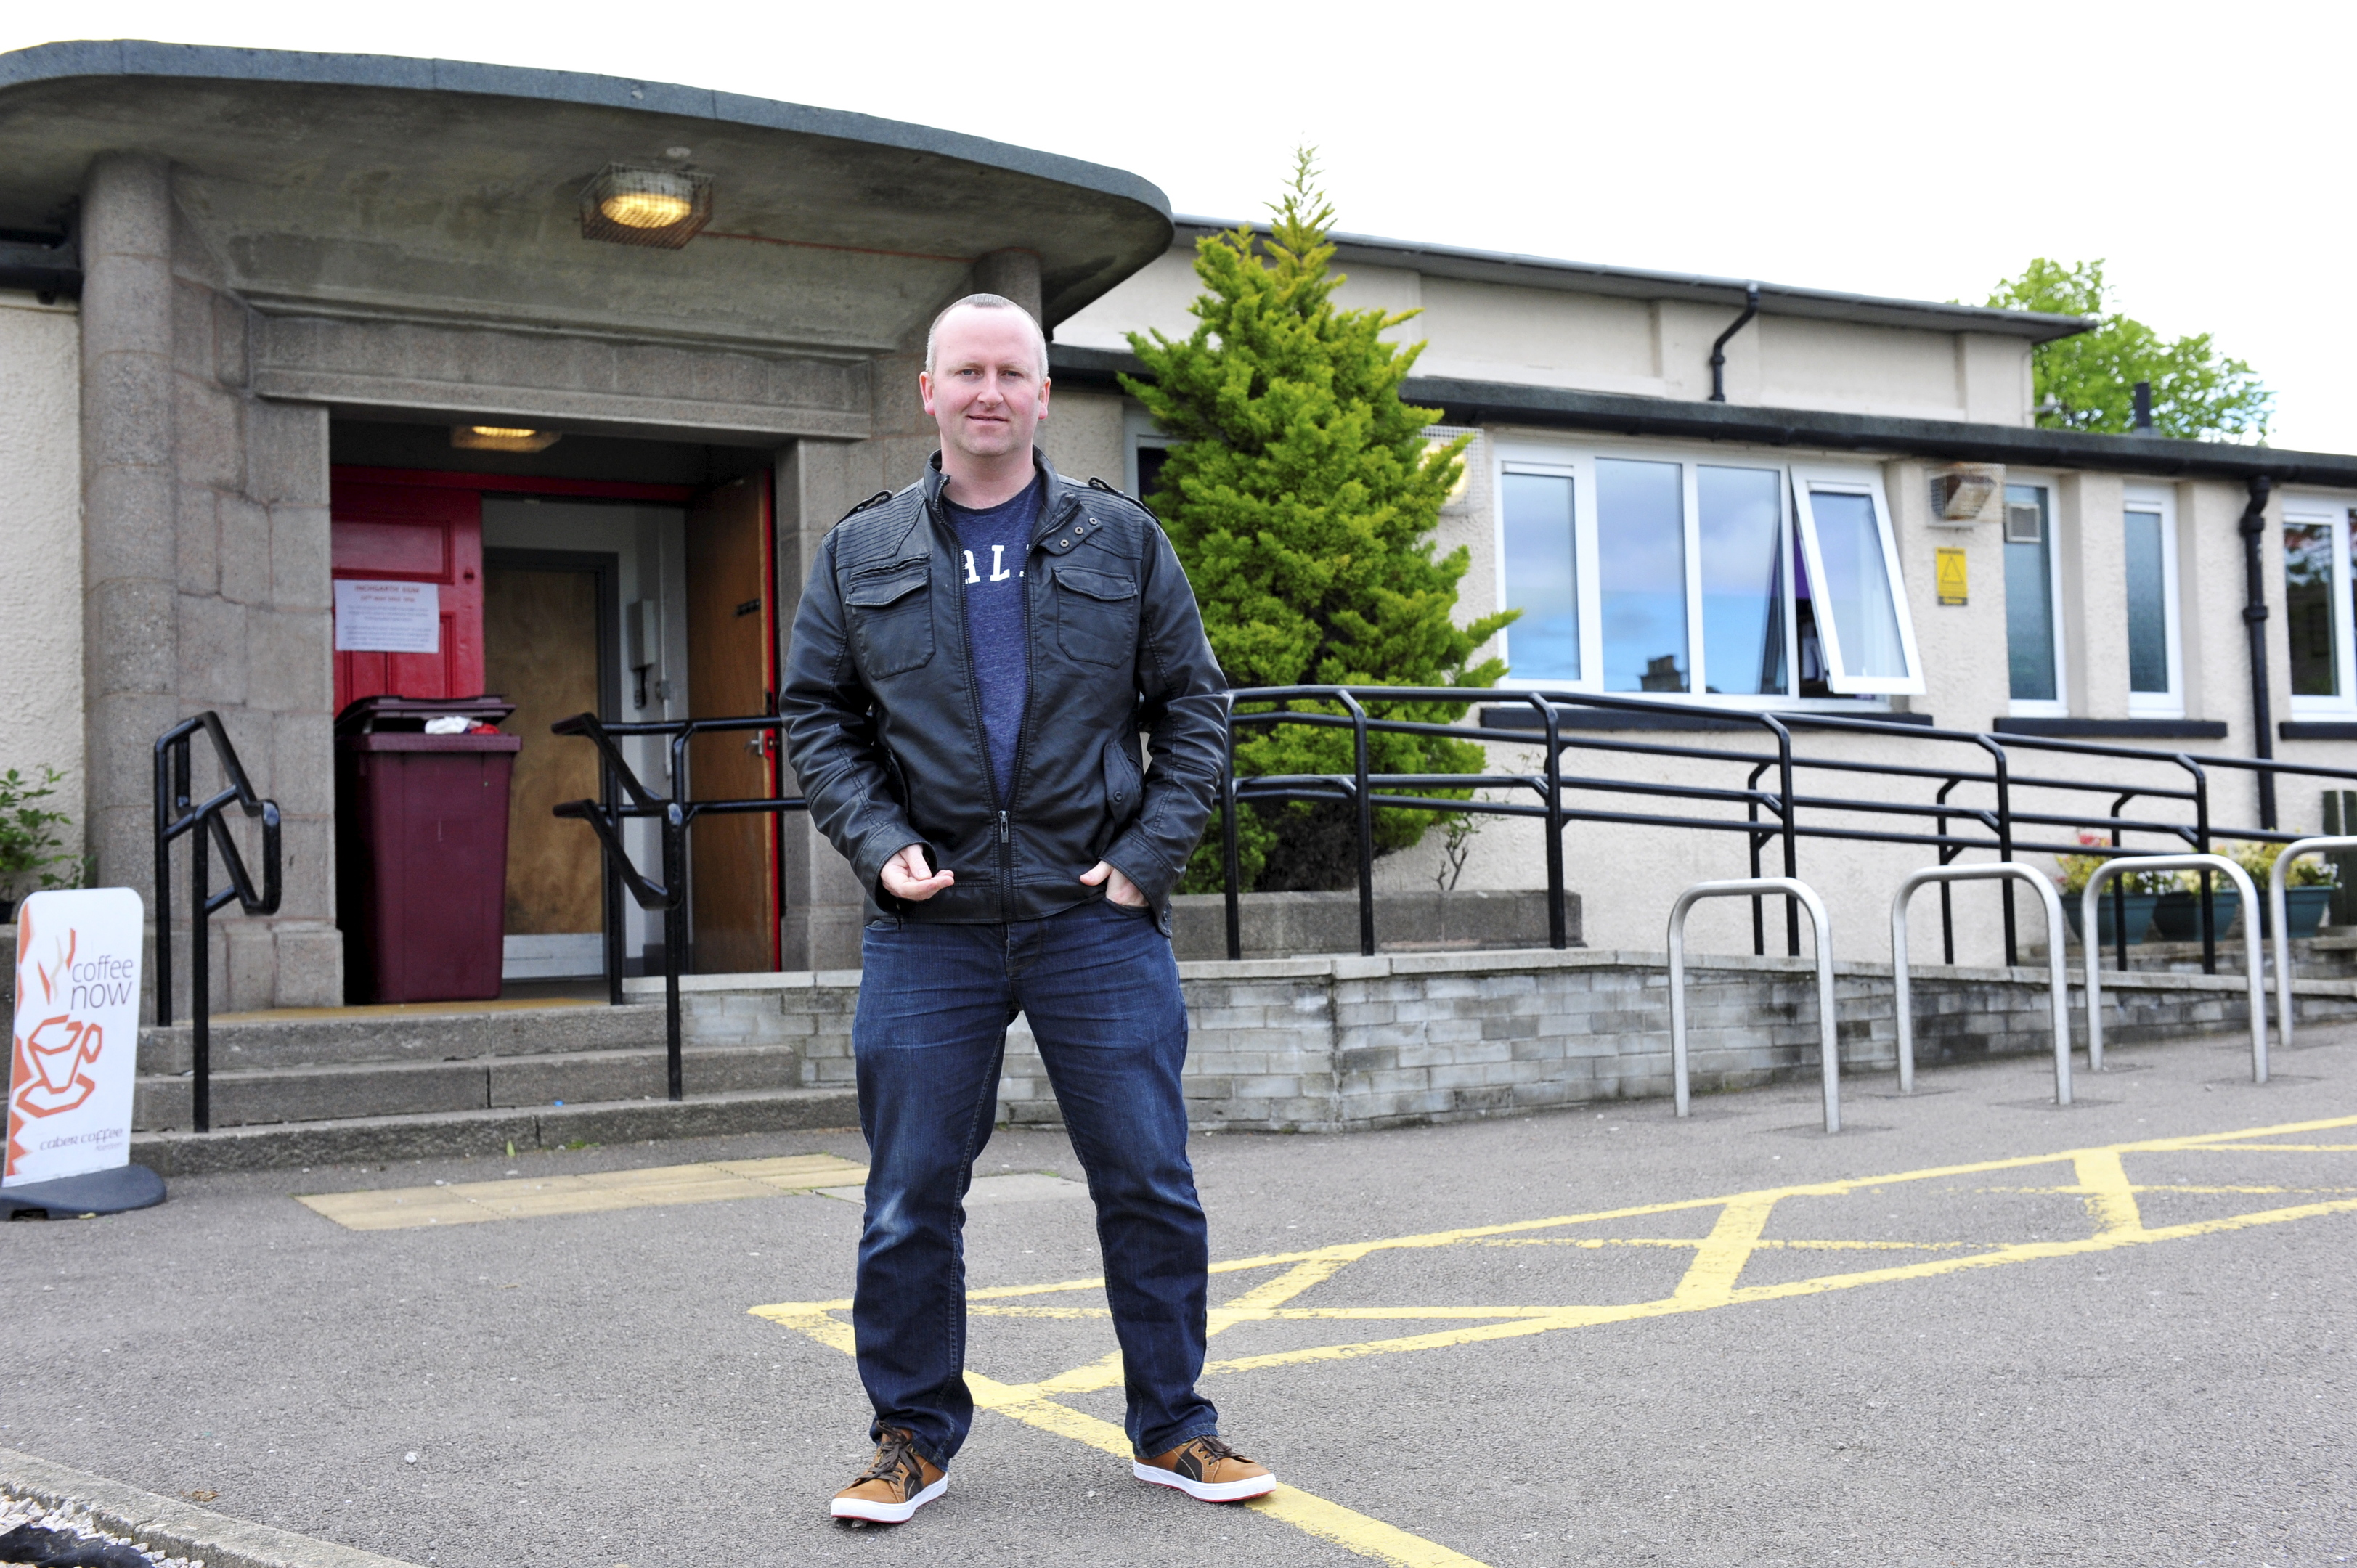 Paul O'Connor has run the youth club in Garthdee for more than 20 years.